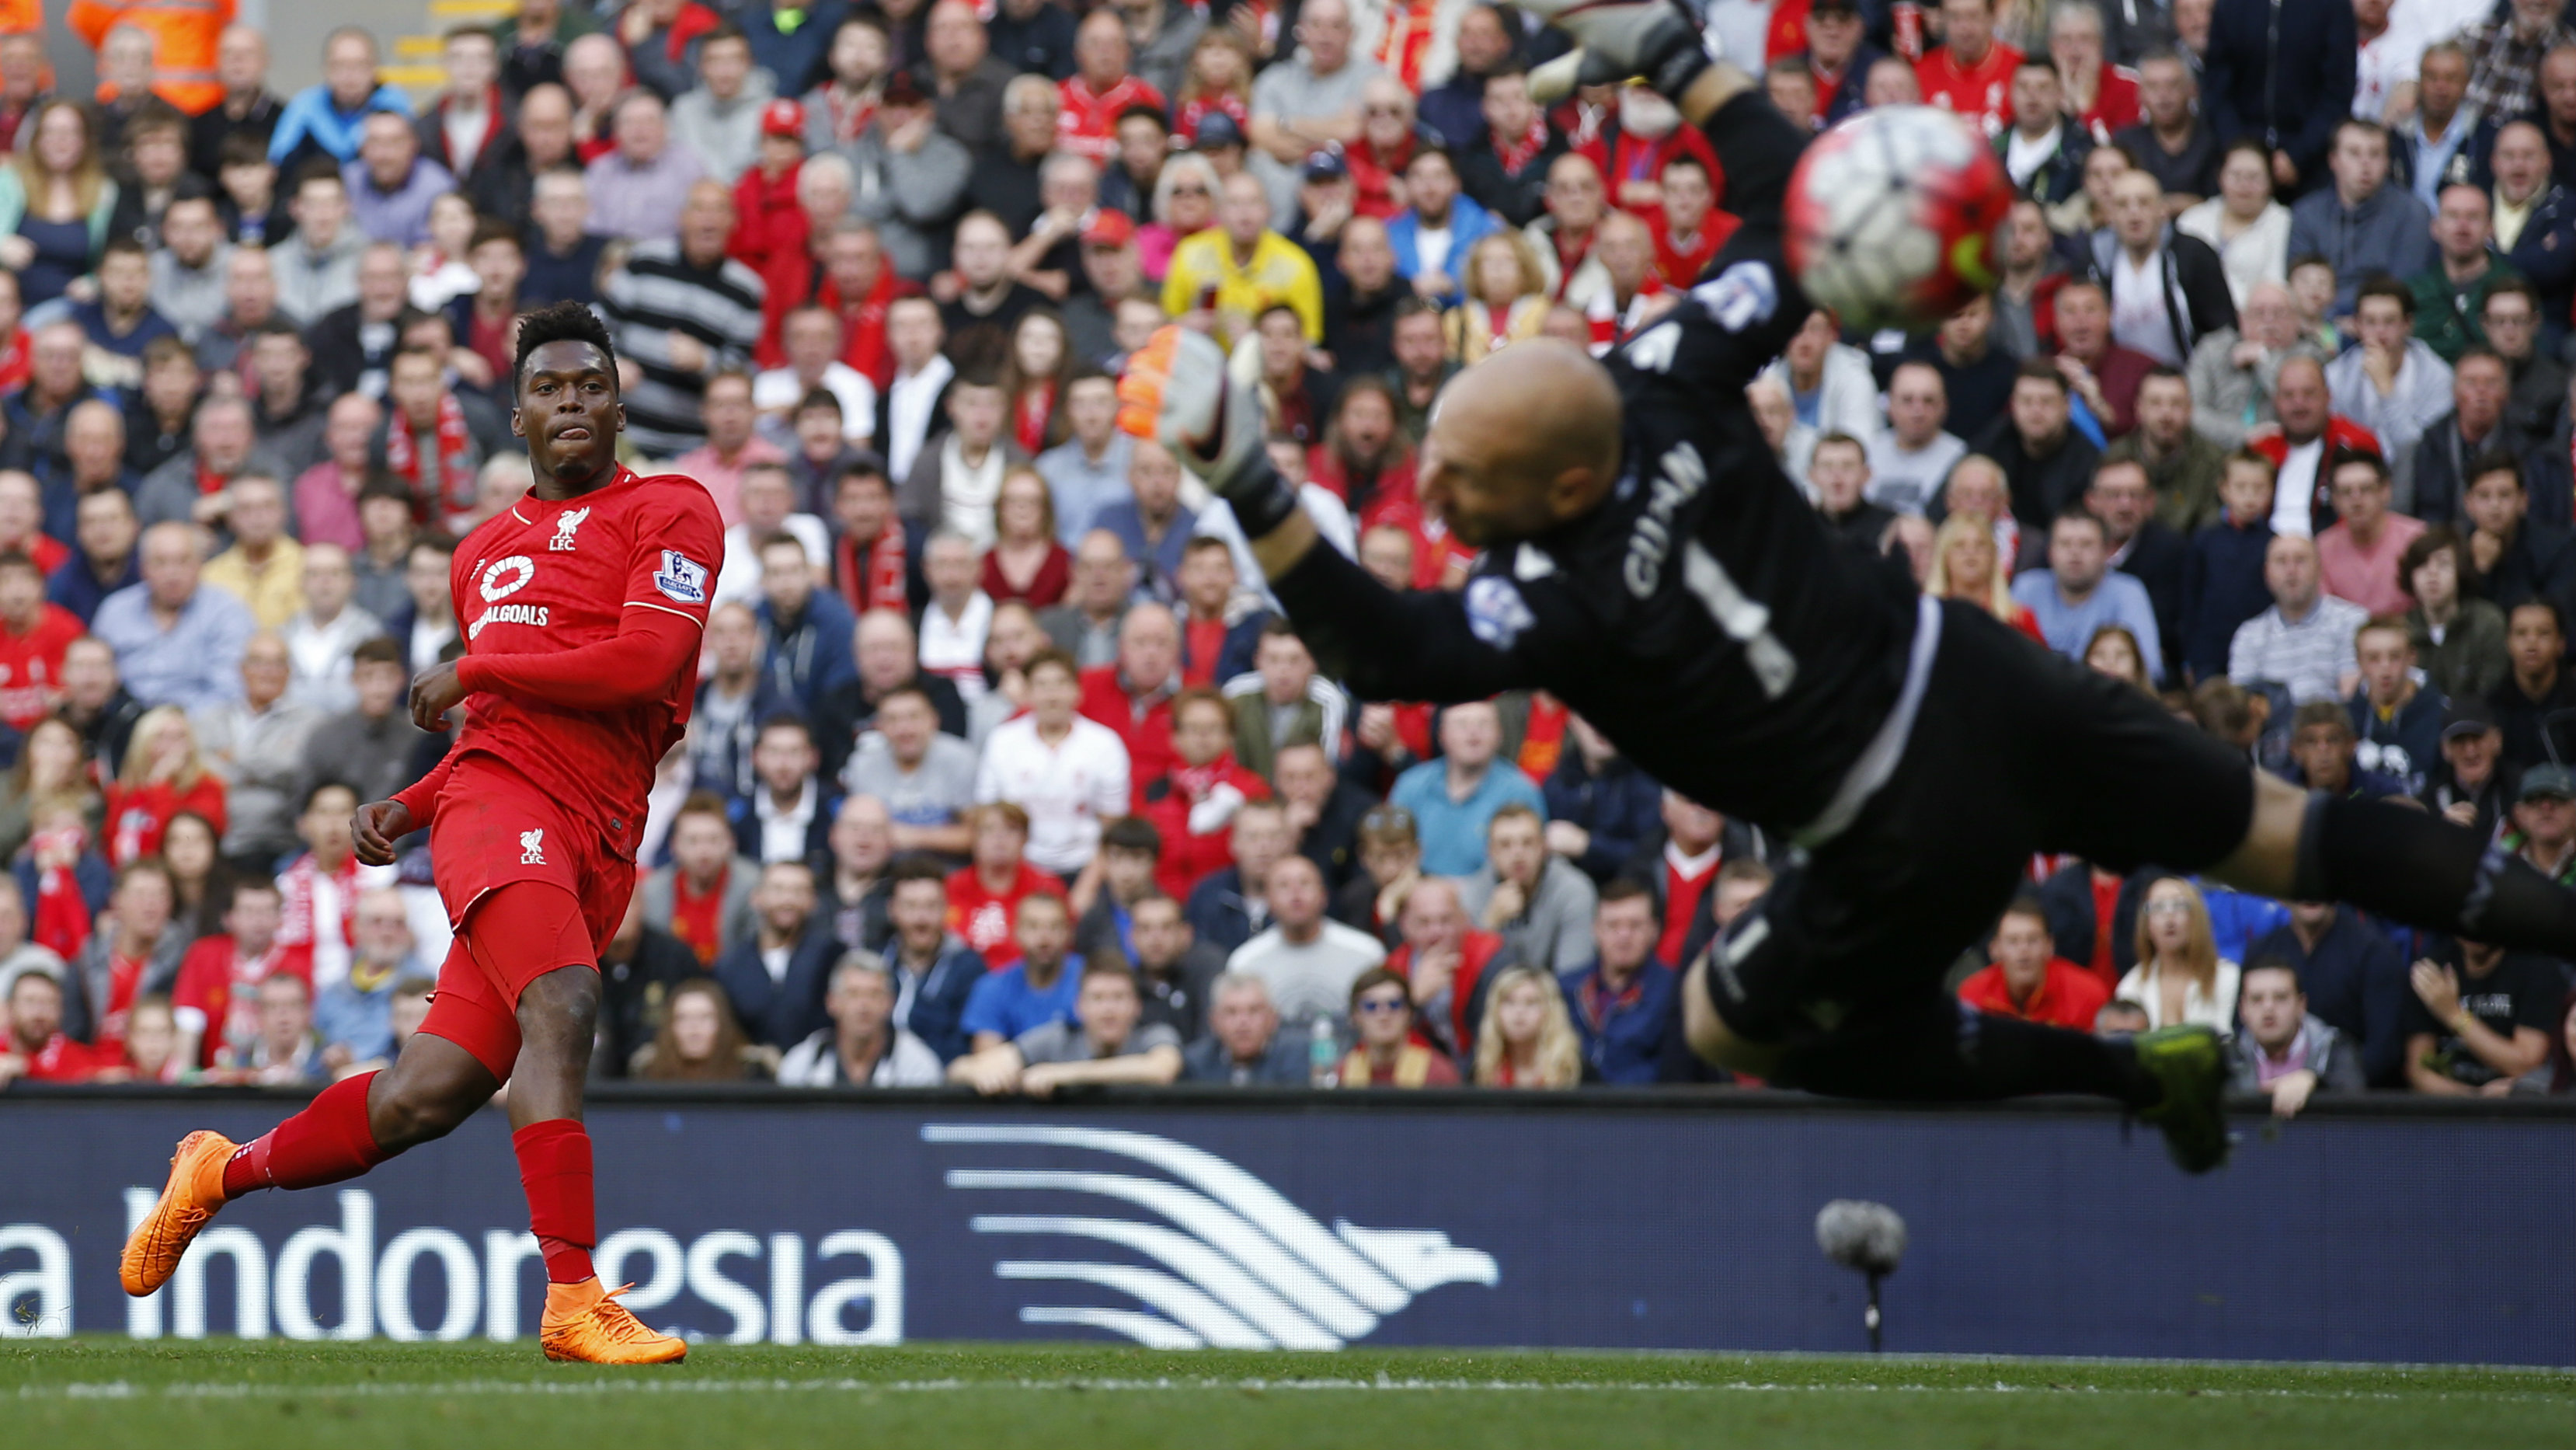 Football - Liverpool v Aston Villa - Barclays Premier League - Anfield - 26/9/15 Liverpool's Daniel Sturridge scores their second goal.